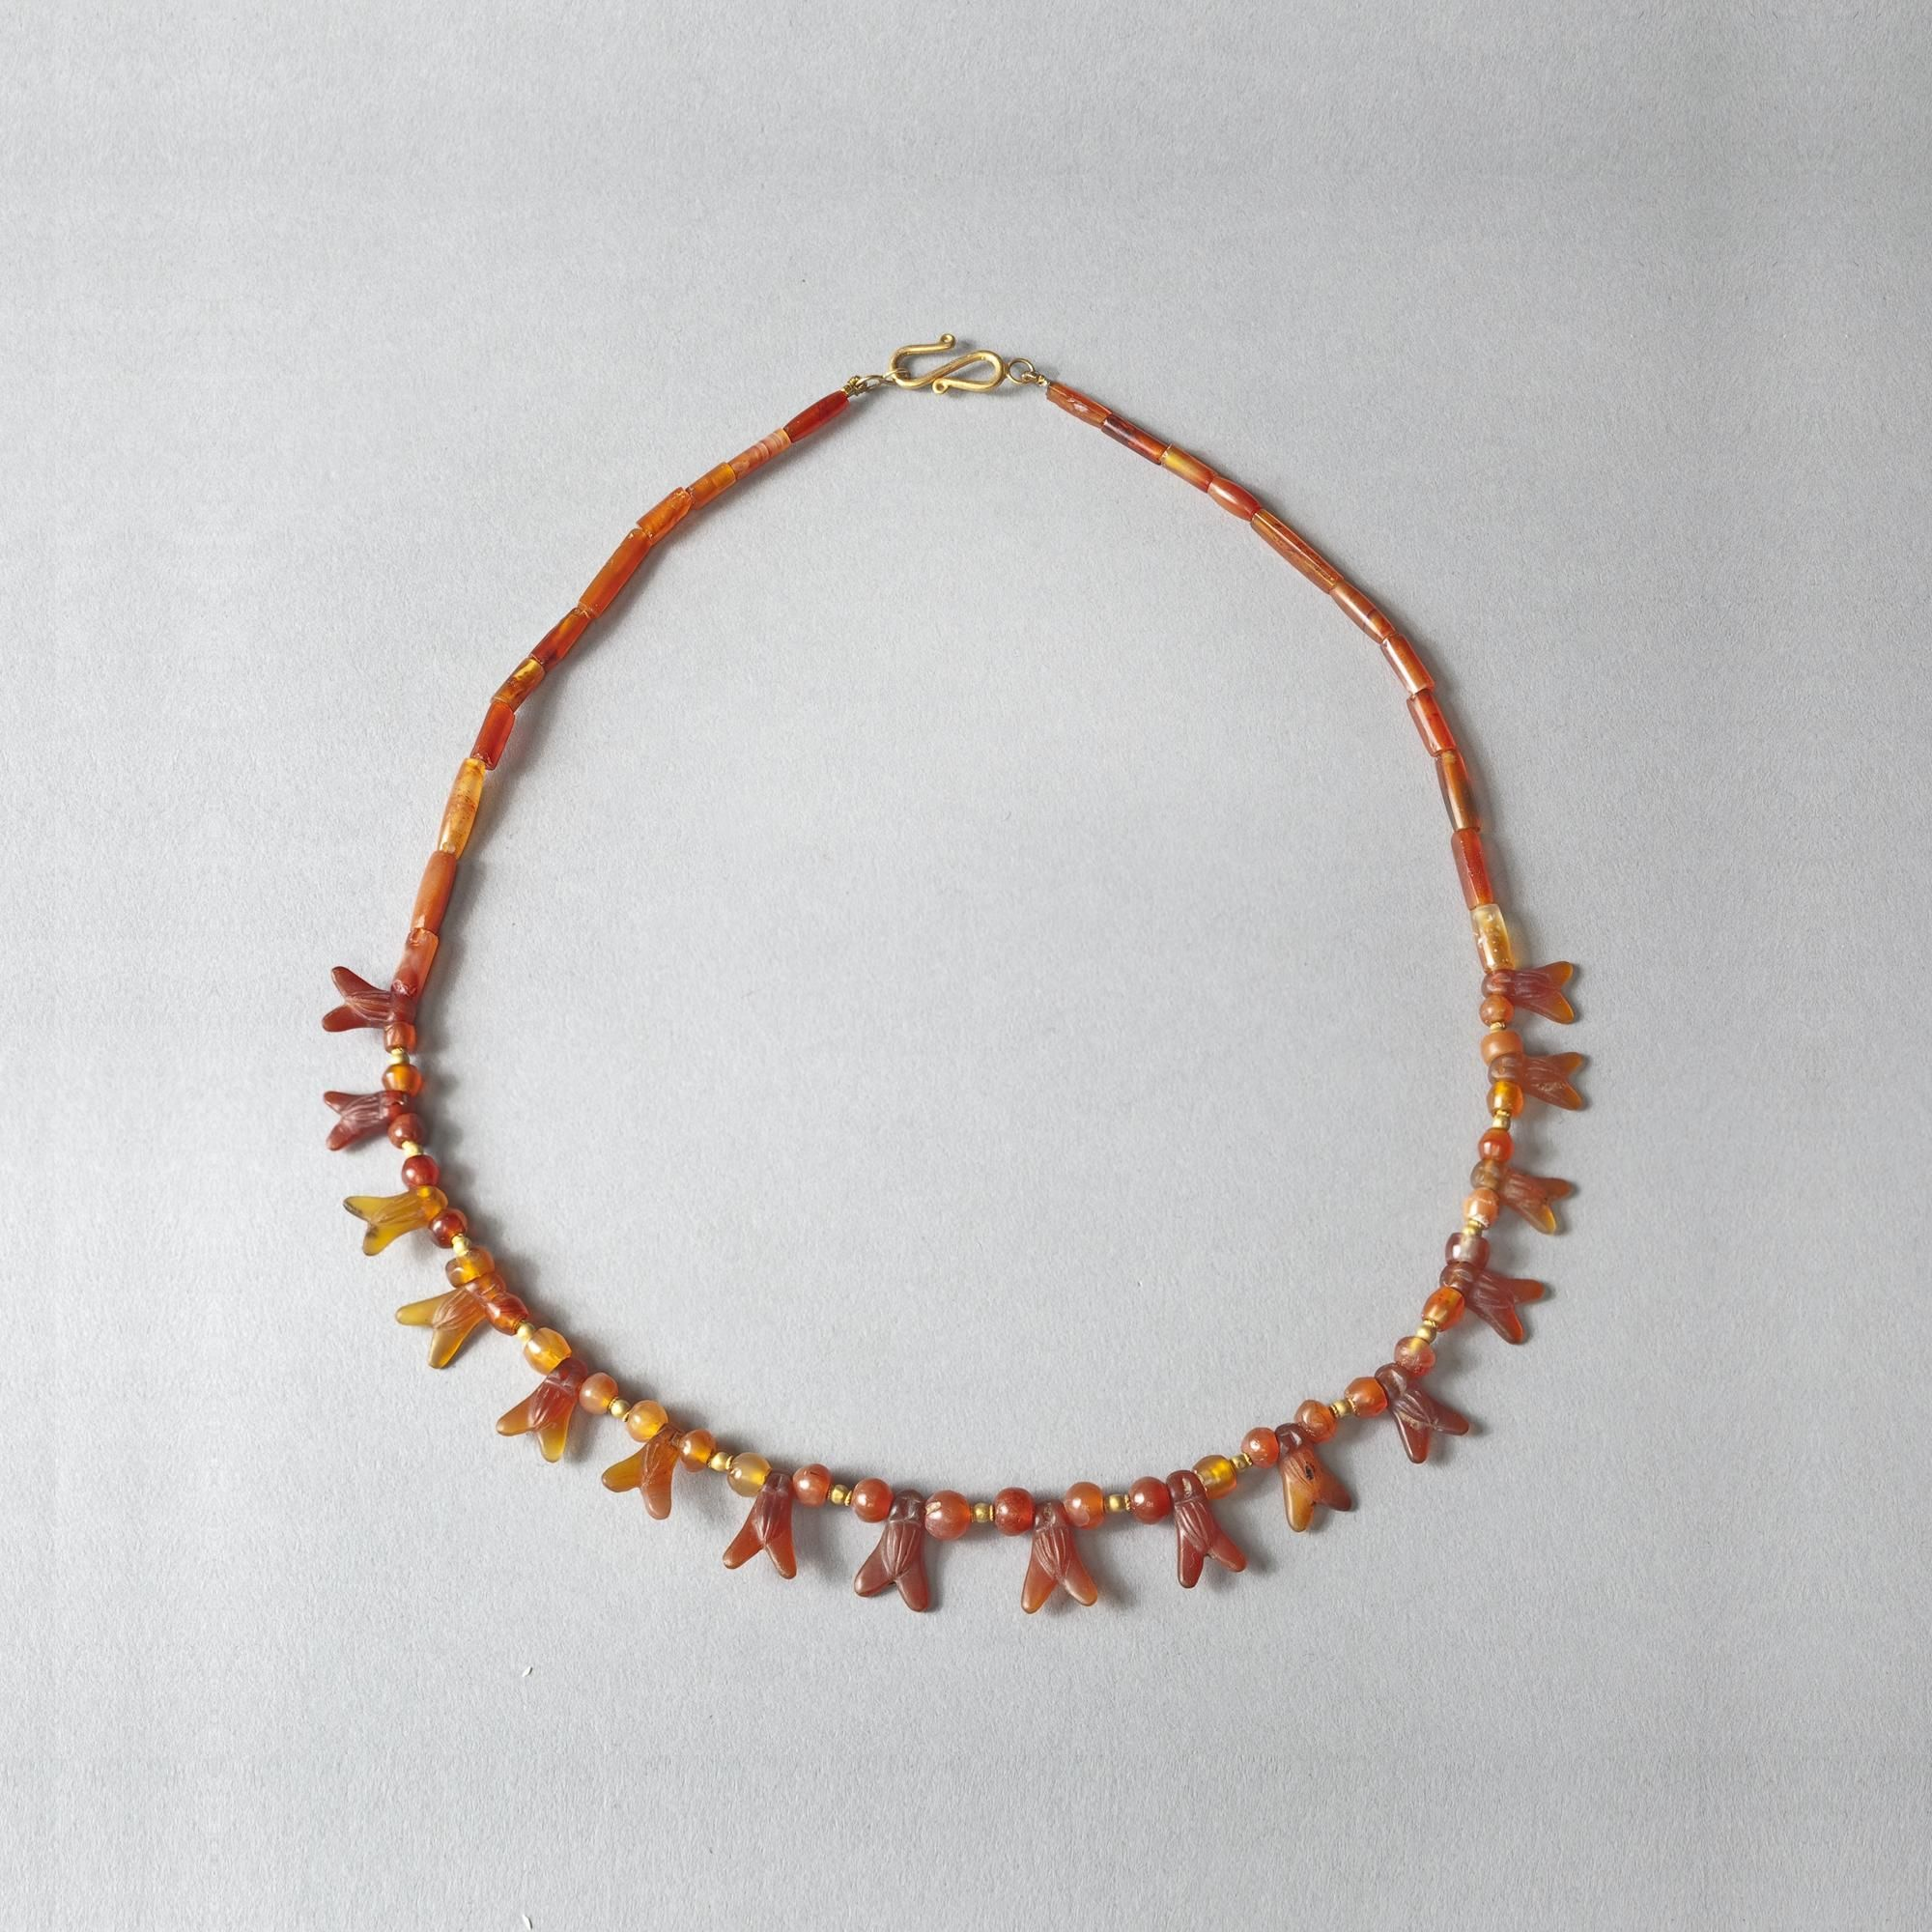 Carnelian Fly Necklace, Egypt, 18th Dynasty, 1549-1292 B.C., Carnelian, 47 cm © David Aaron